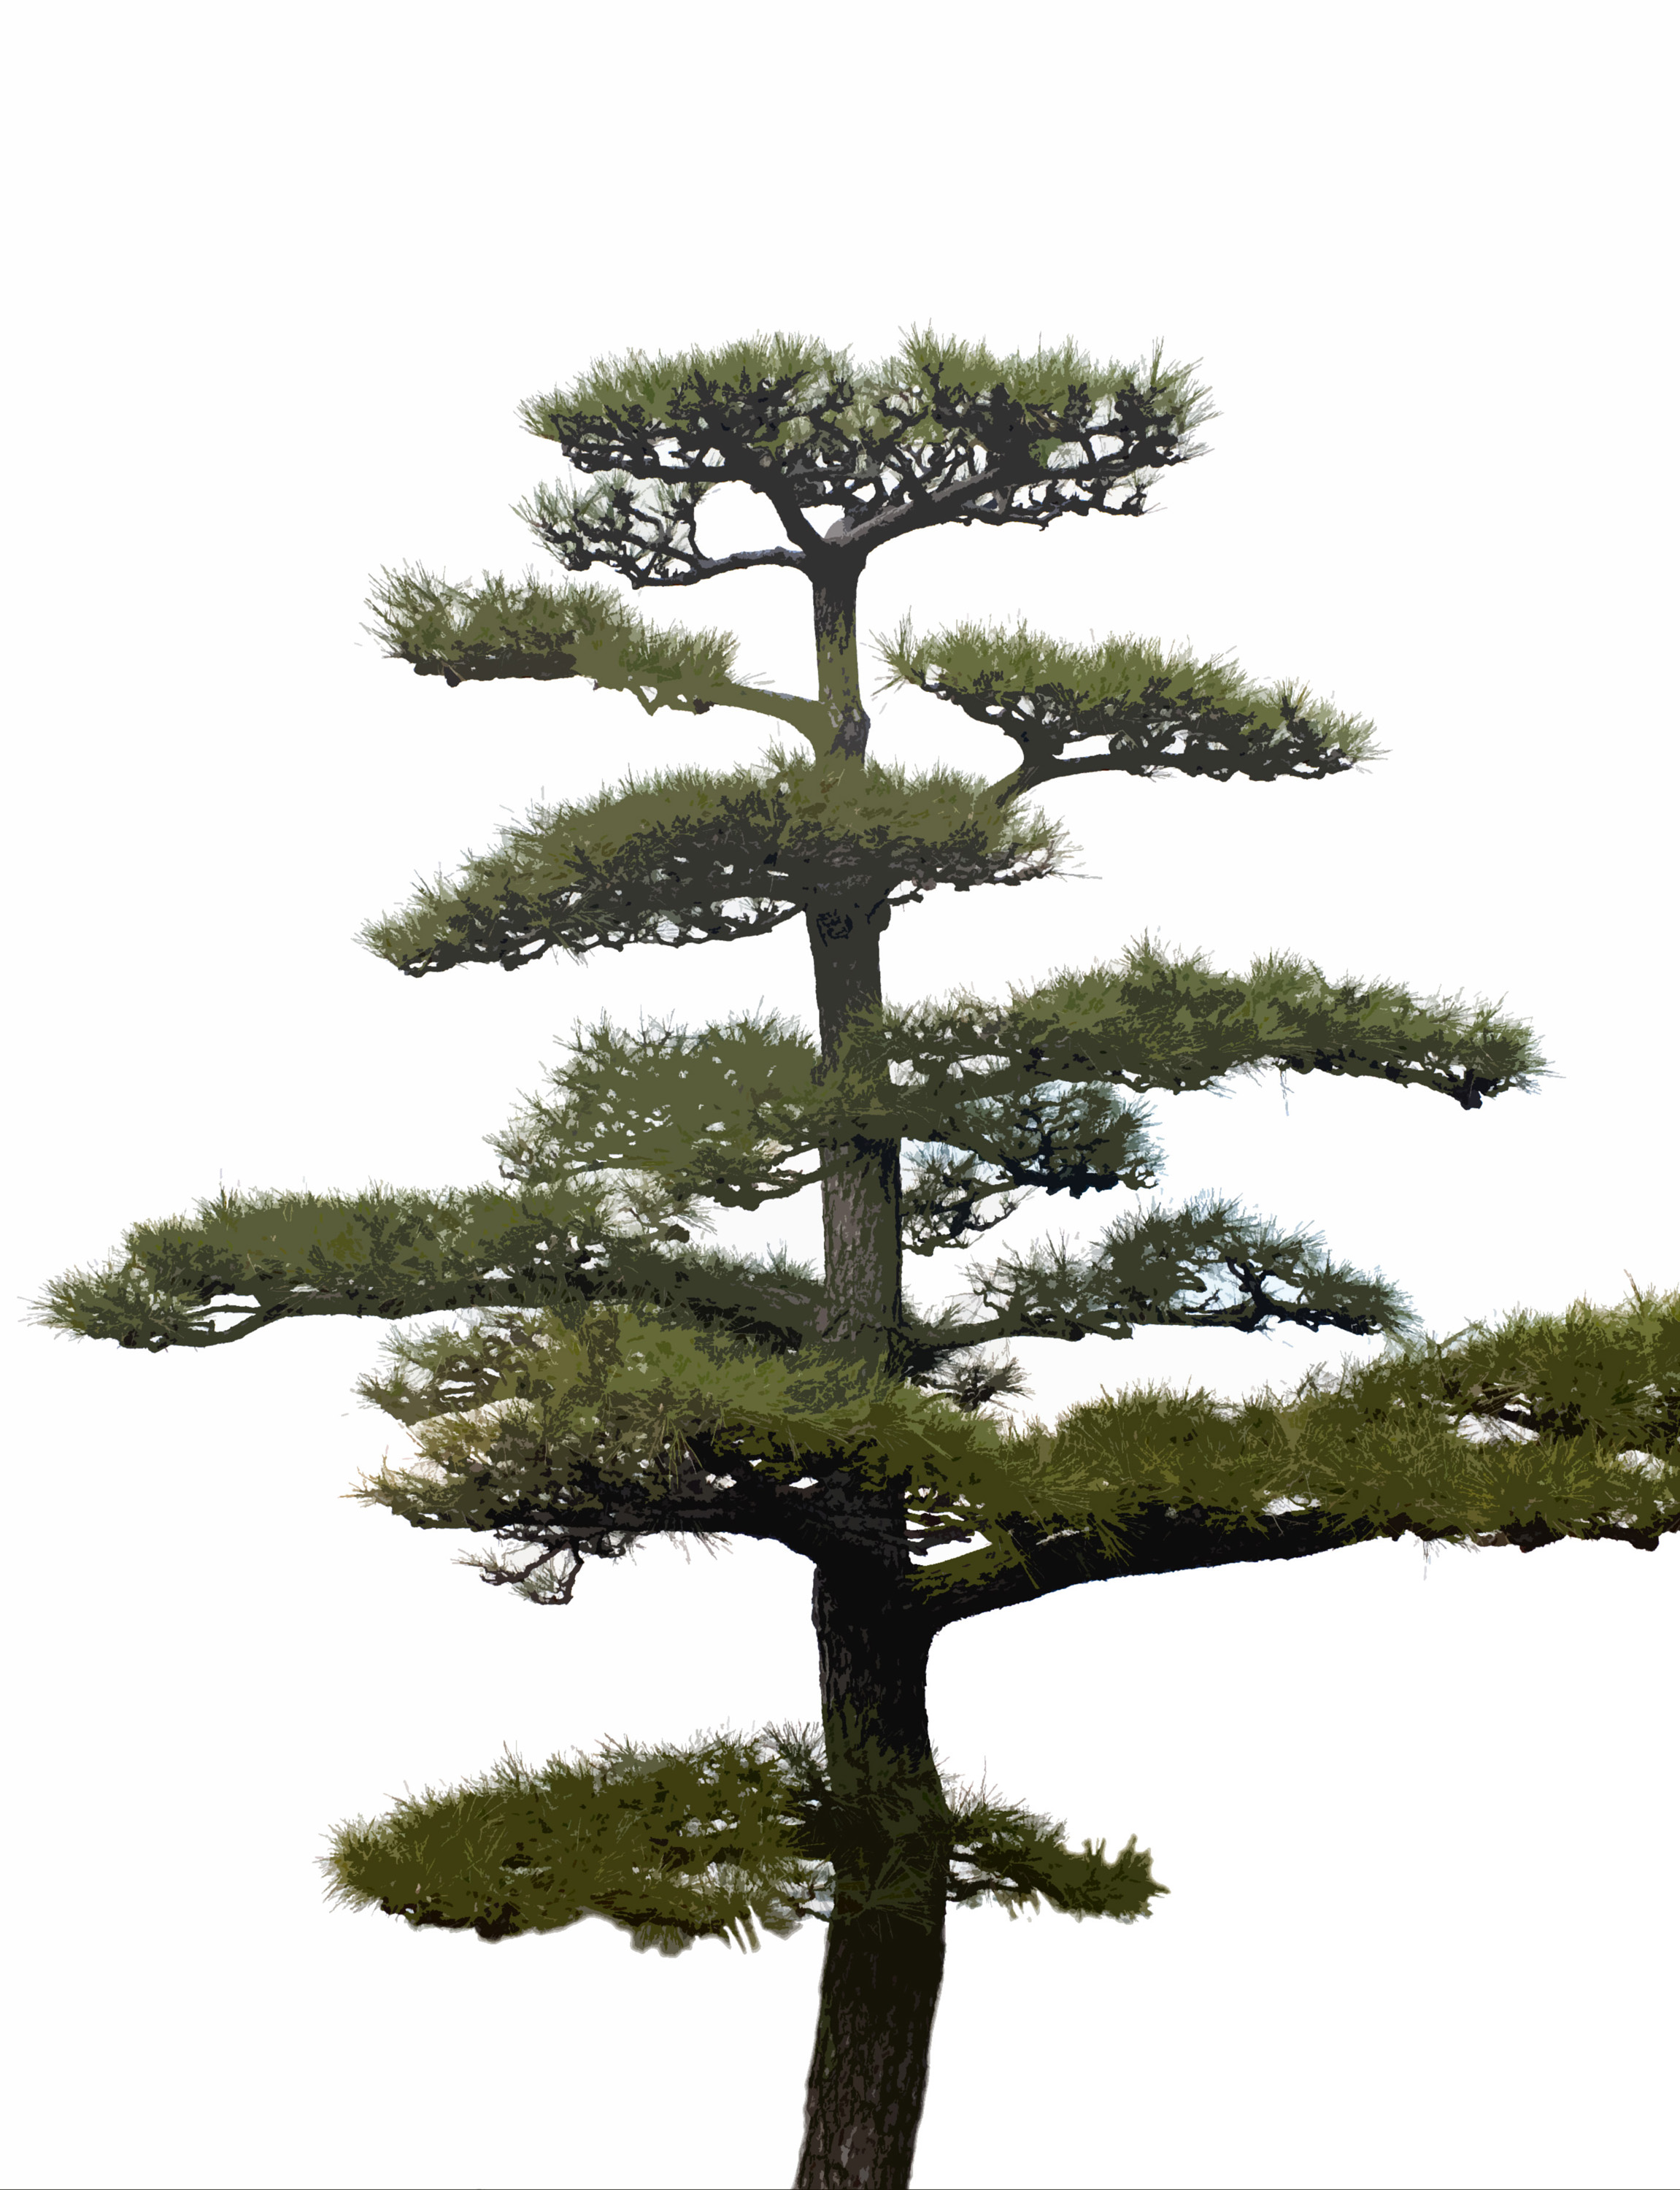 Ornamental evergreen trees - Accept License And Download Image